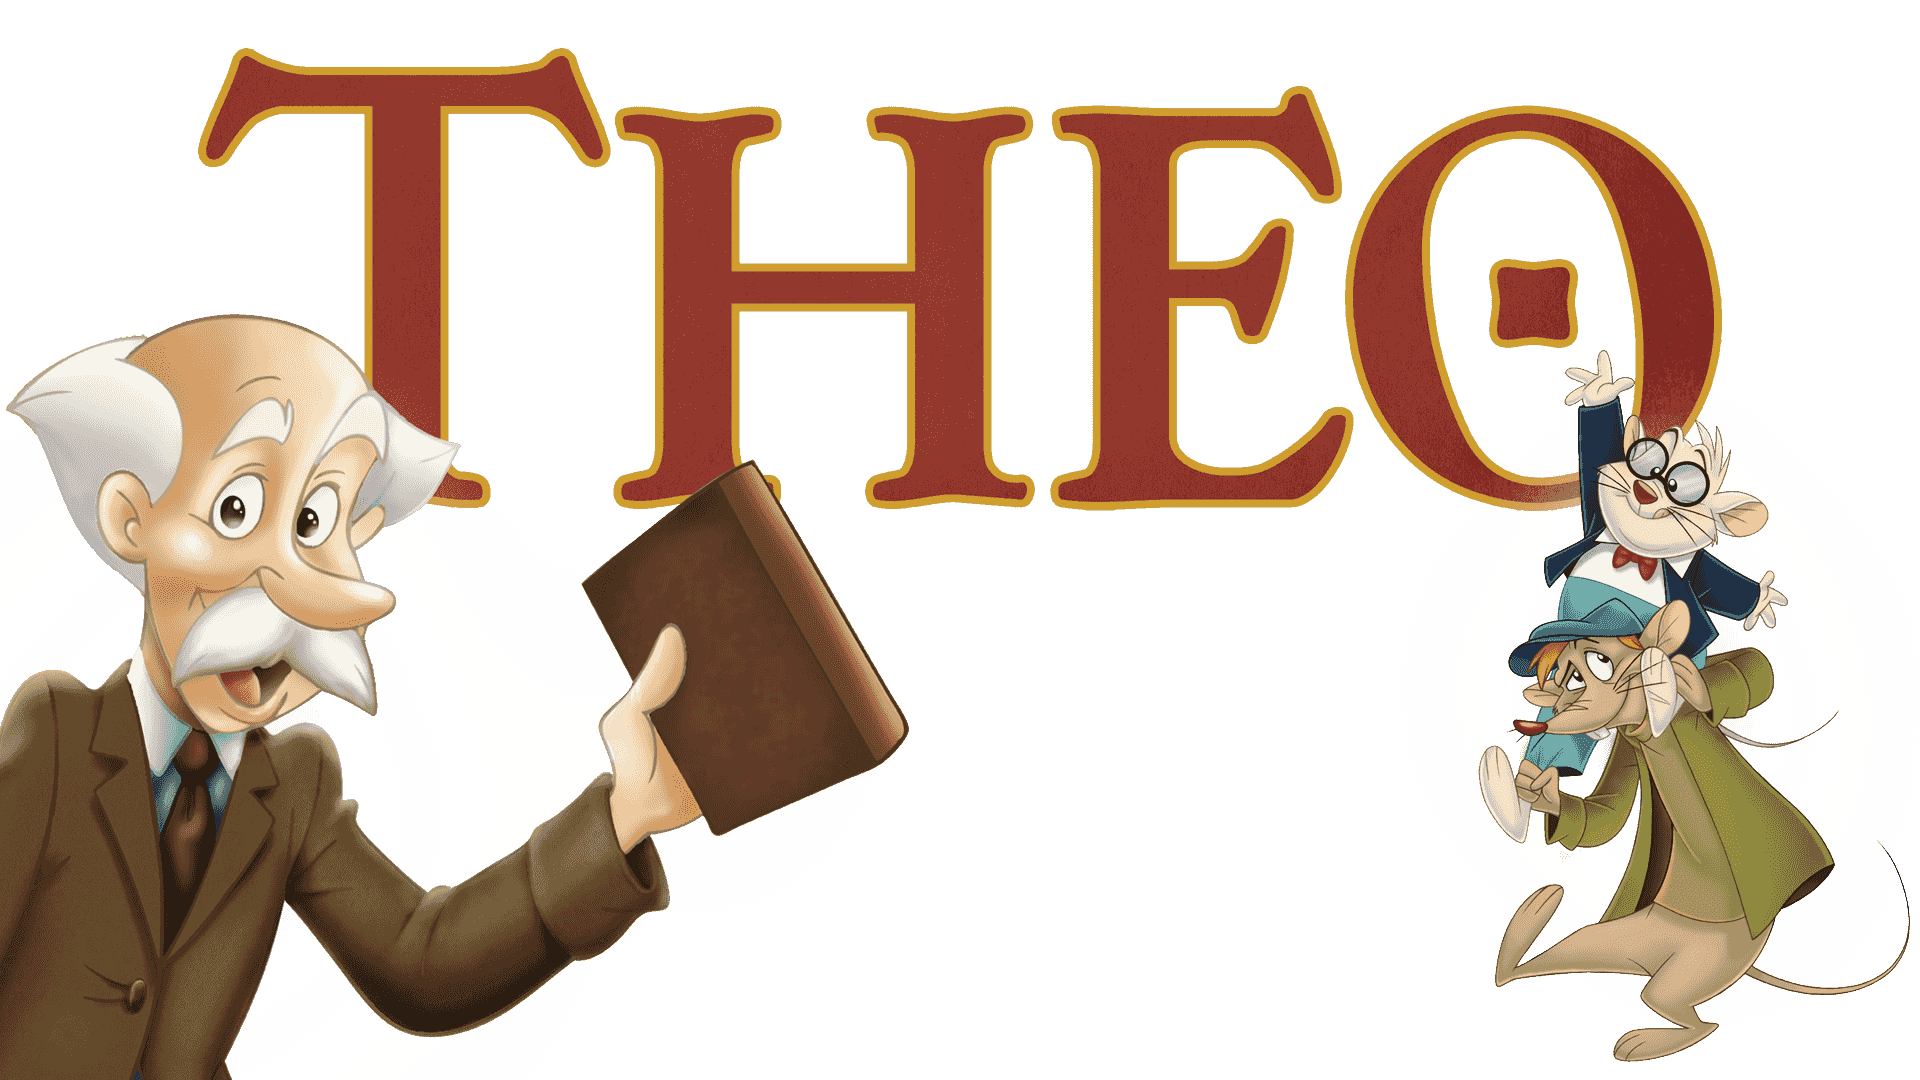 Theo characters